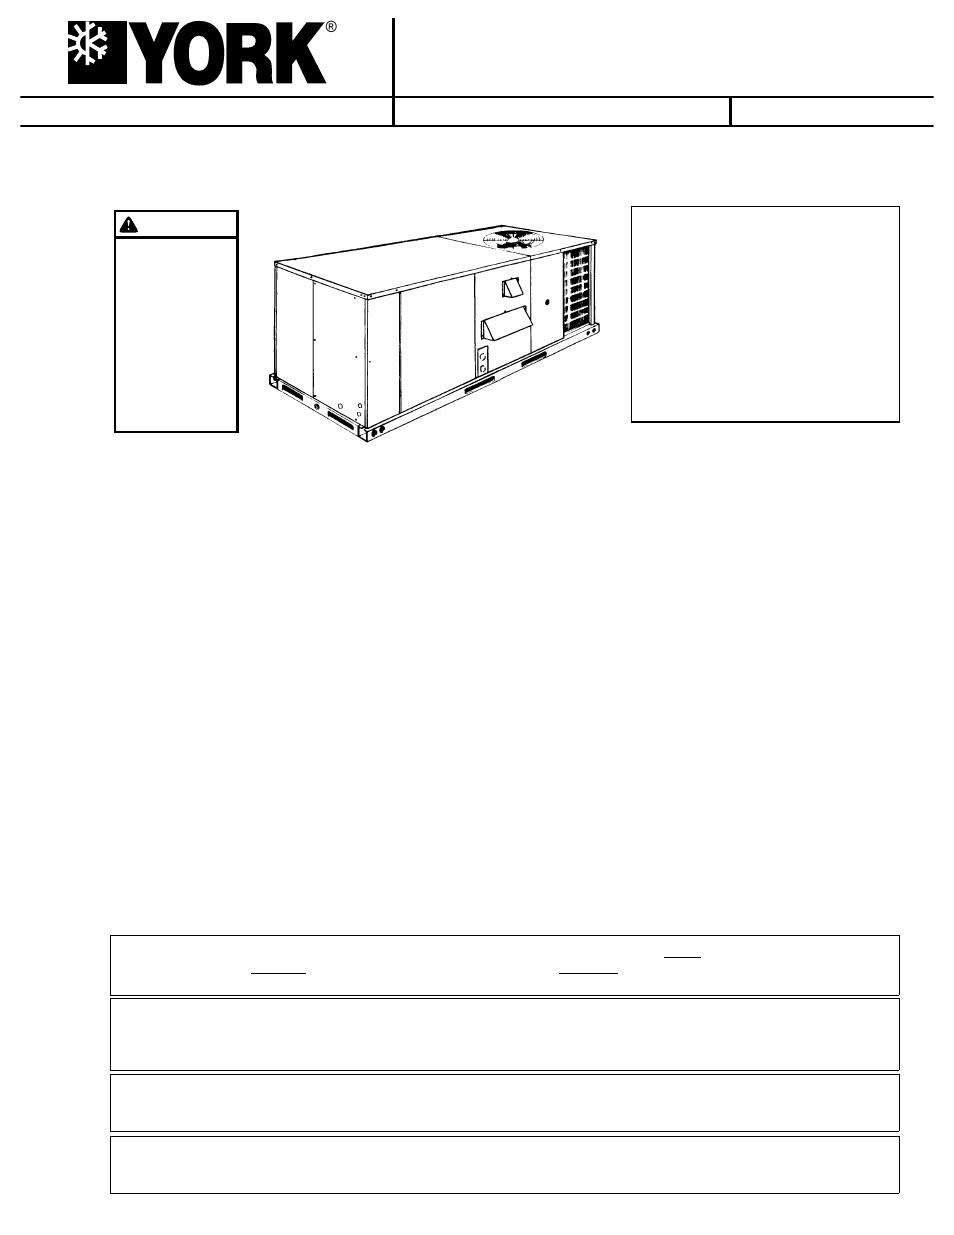 York SUNLINE 2000 D2CG 072 User Manual | 20 pages | Also for: SUNLINE 2000  D7CG 036, SUNLINE 2000 D7CG 048, SUNLINE 2000 D7CG 060